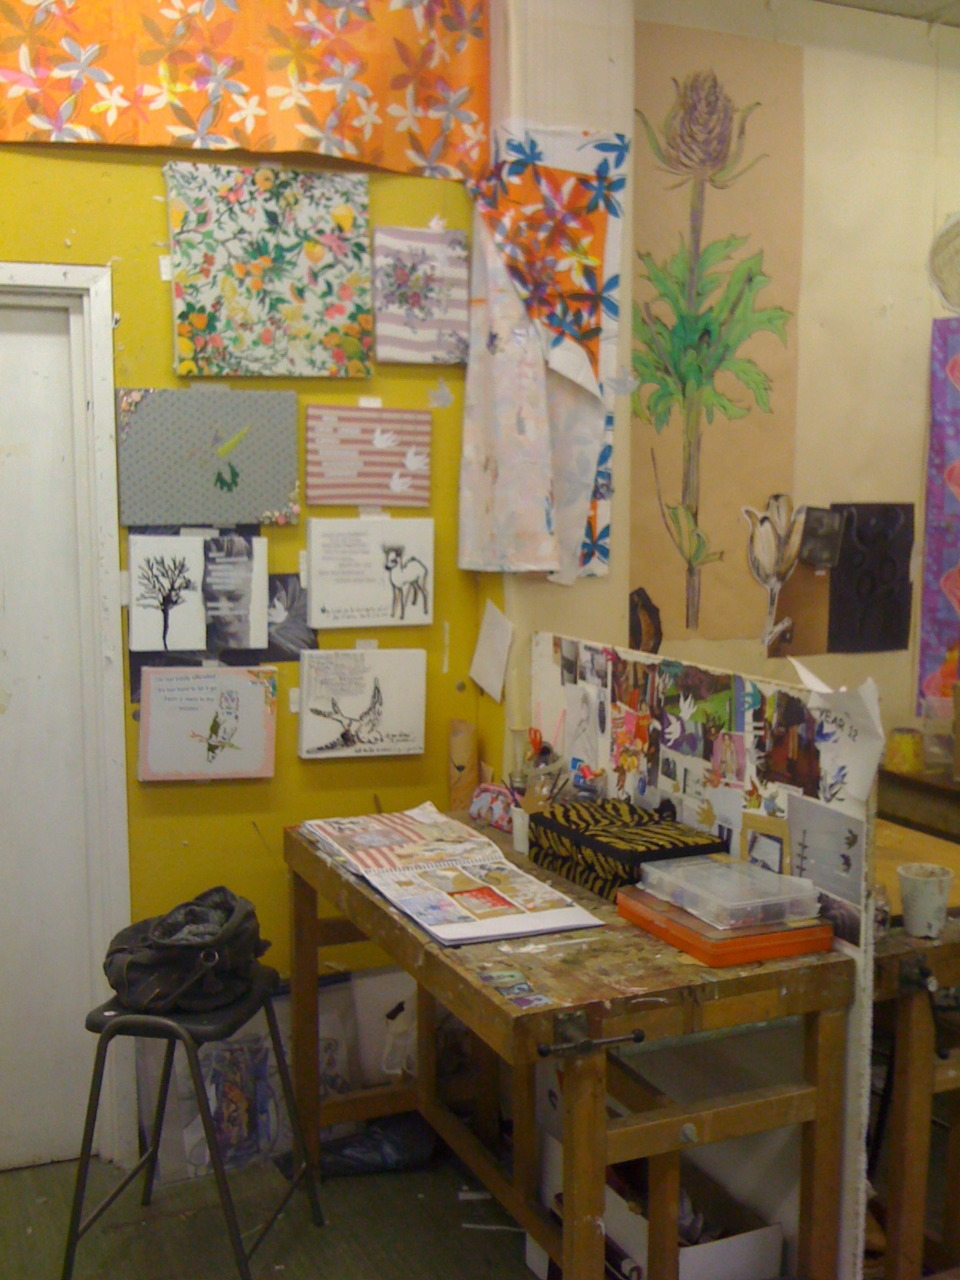 my art space at school, I've made it my own :)